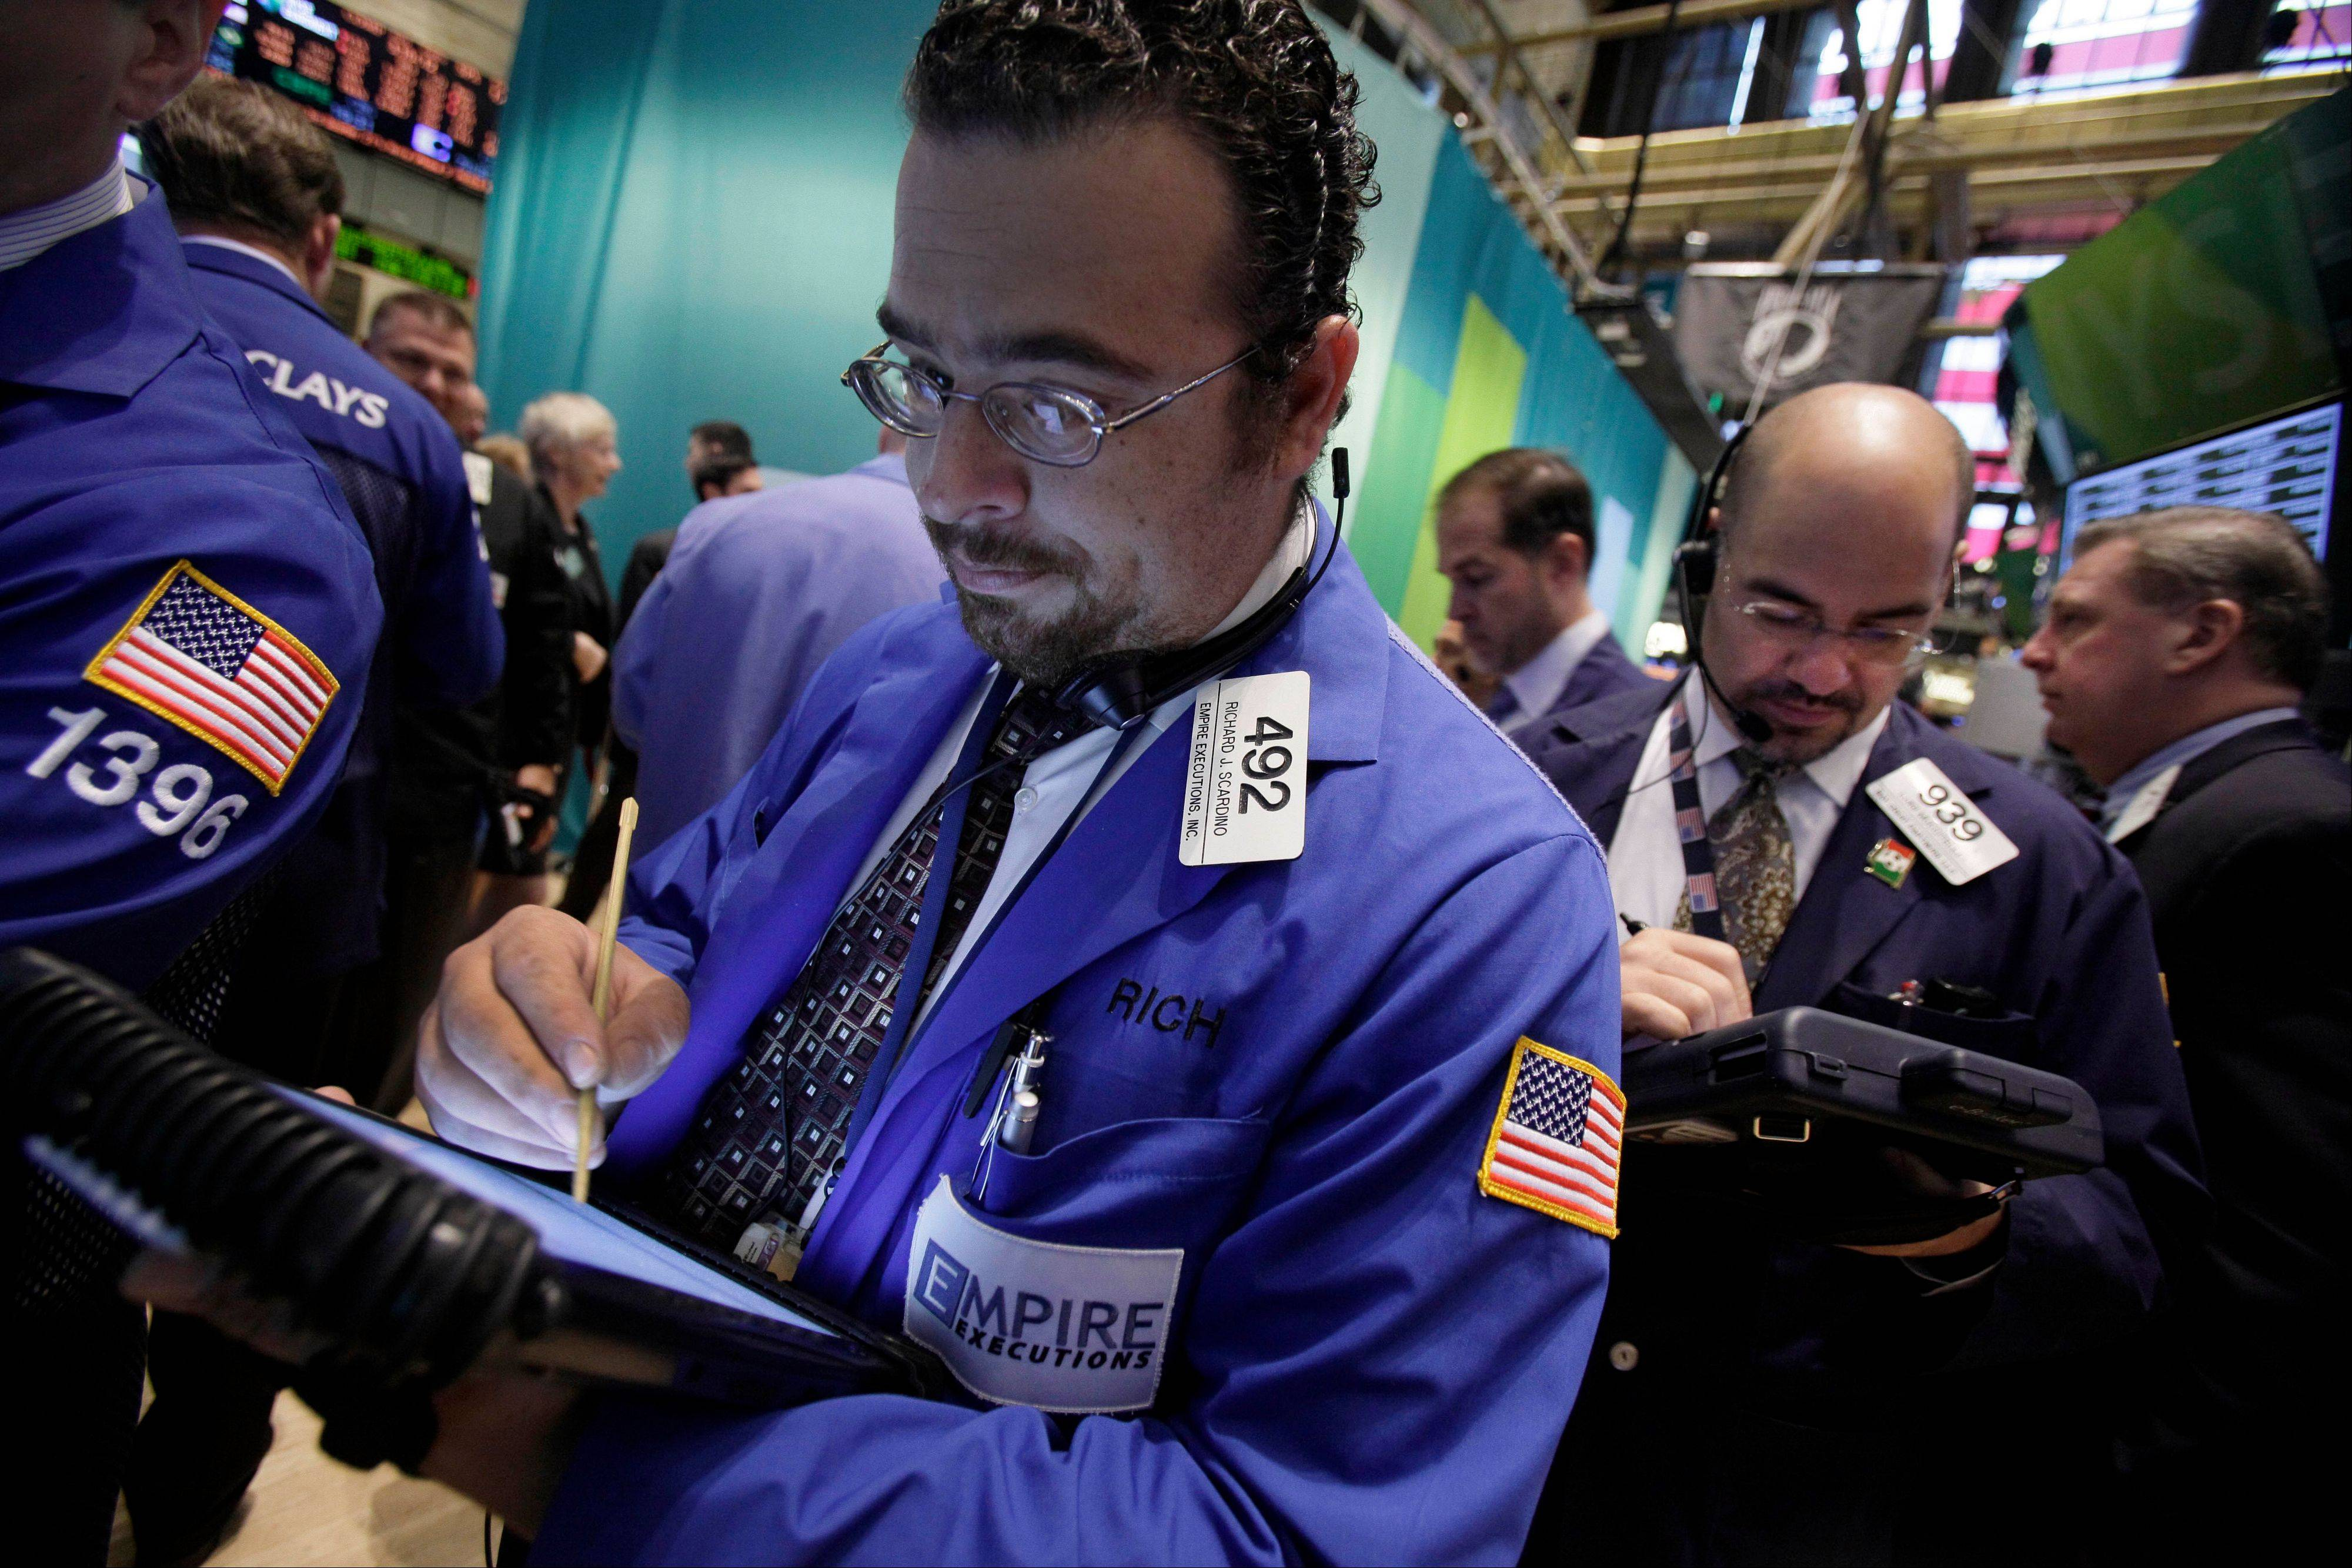 U.S. stocks fell, after a three-day advance in the Standard & Poor's 500 Index, as Google pulled down technology shares after reporting third-quarter profit and sales that missed estimates.